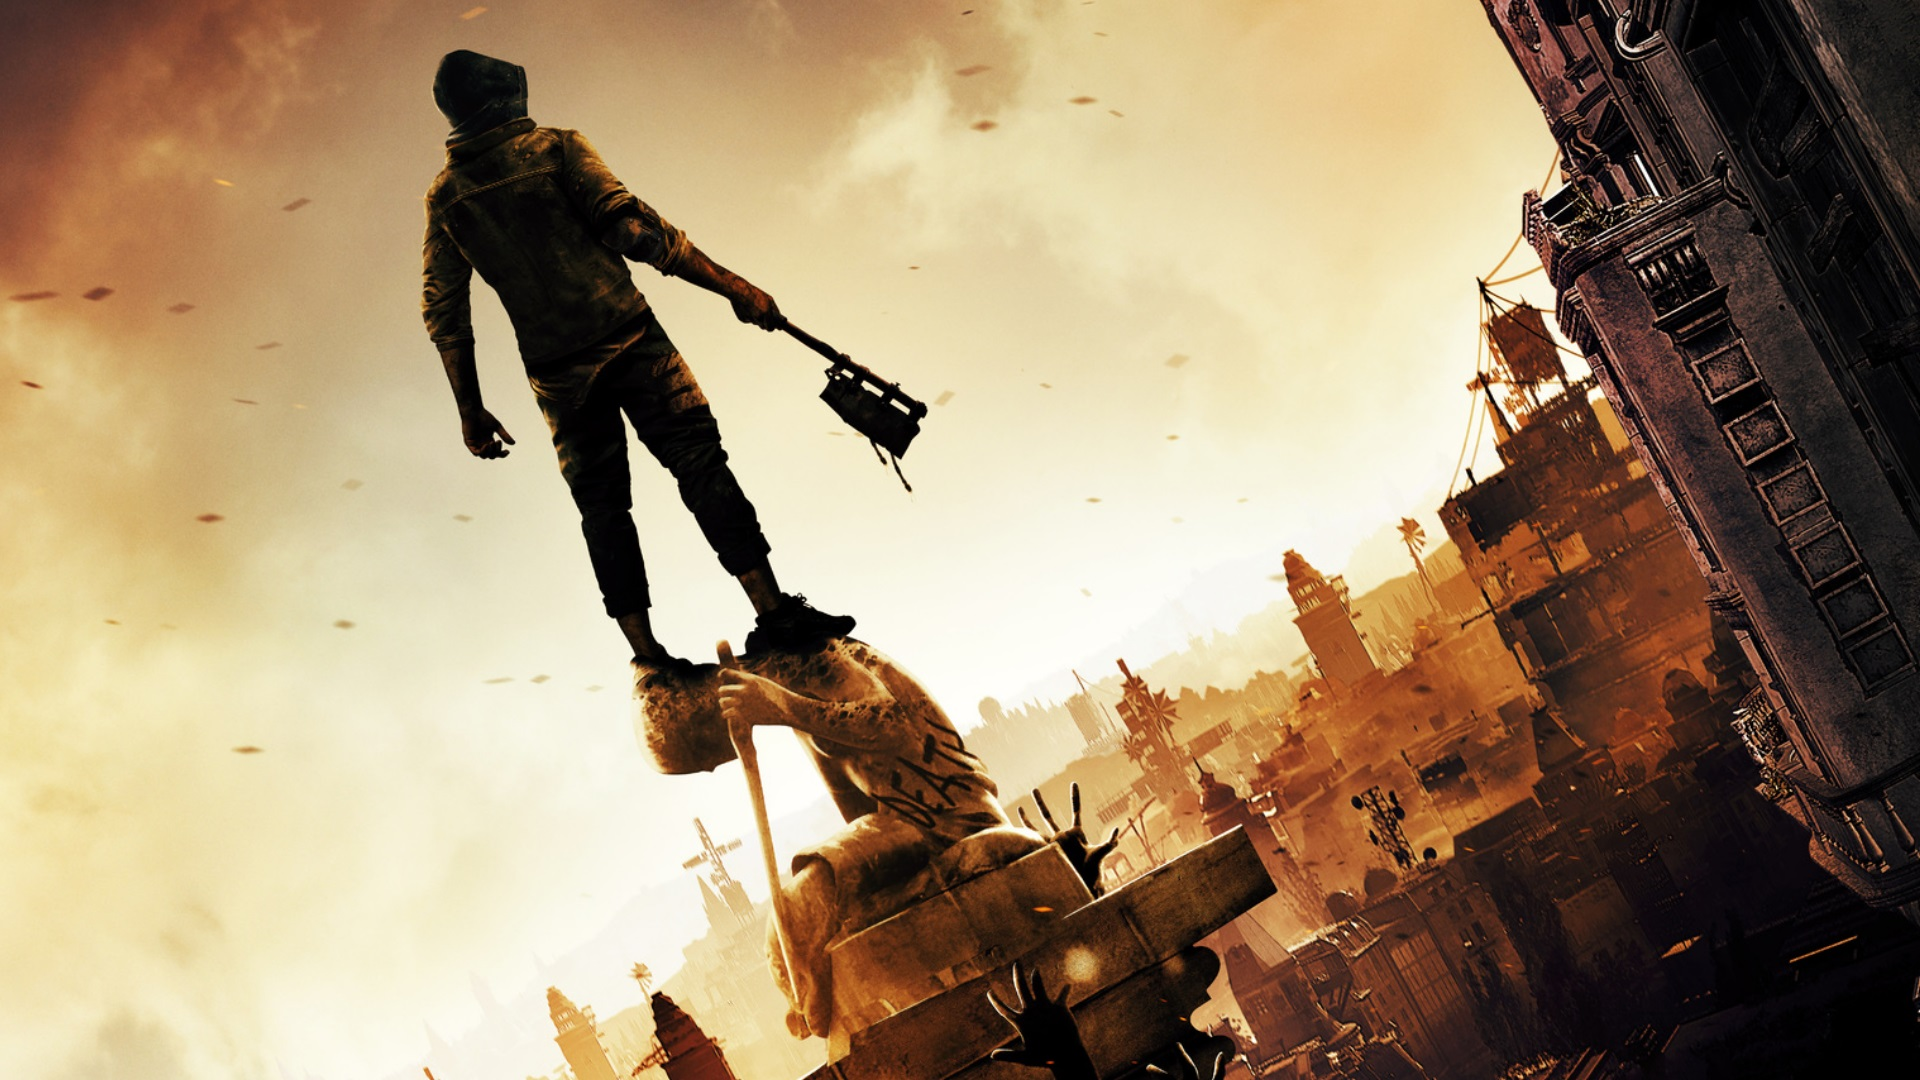 Dying Light 2 release date and all the latest details